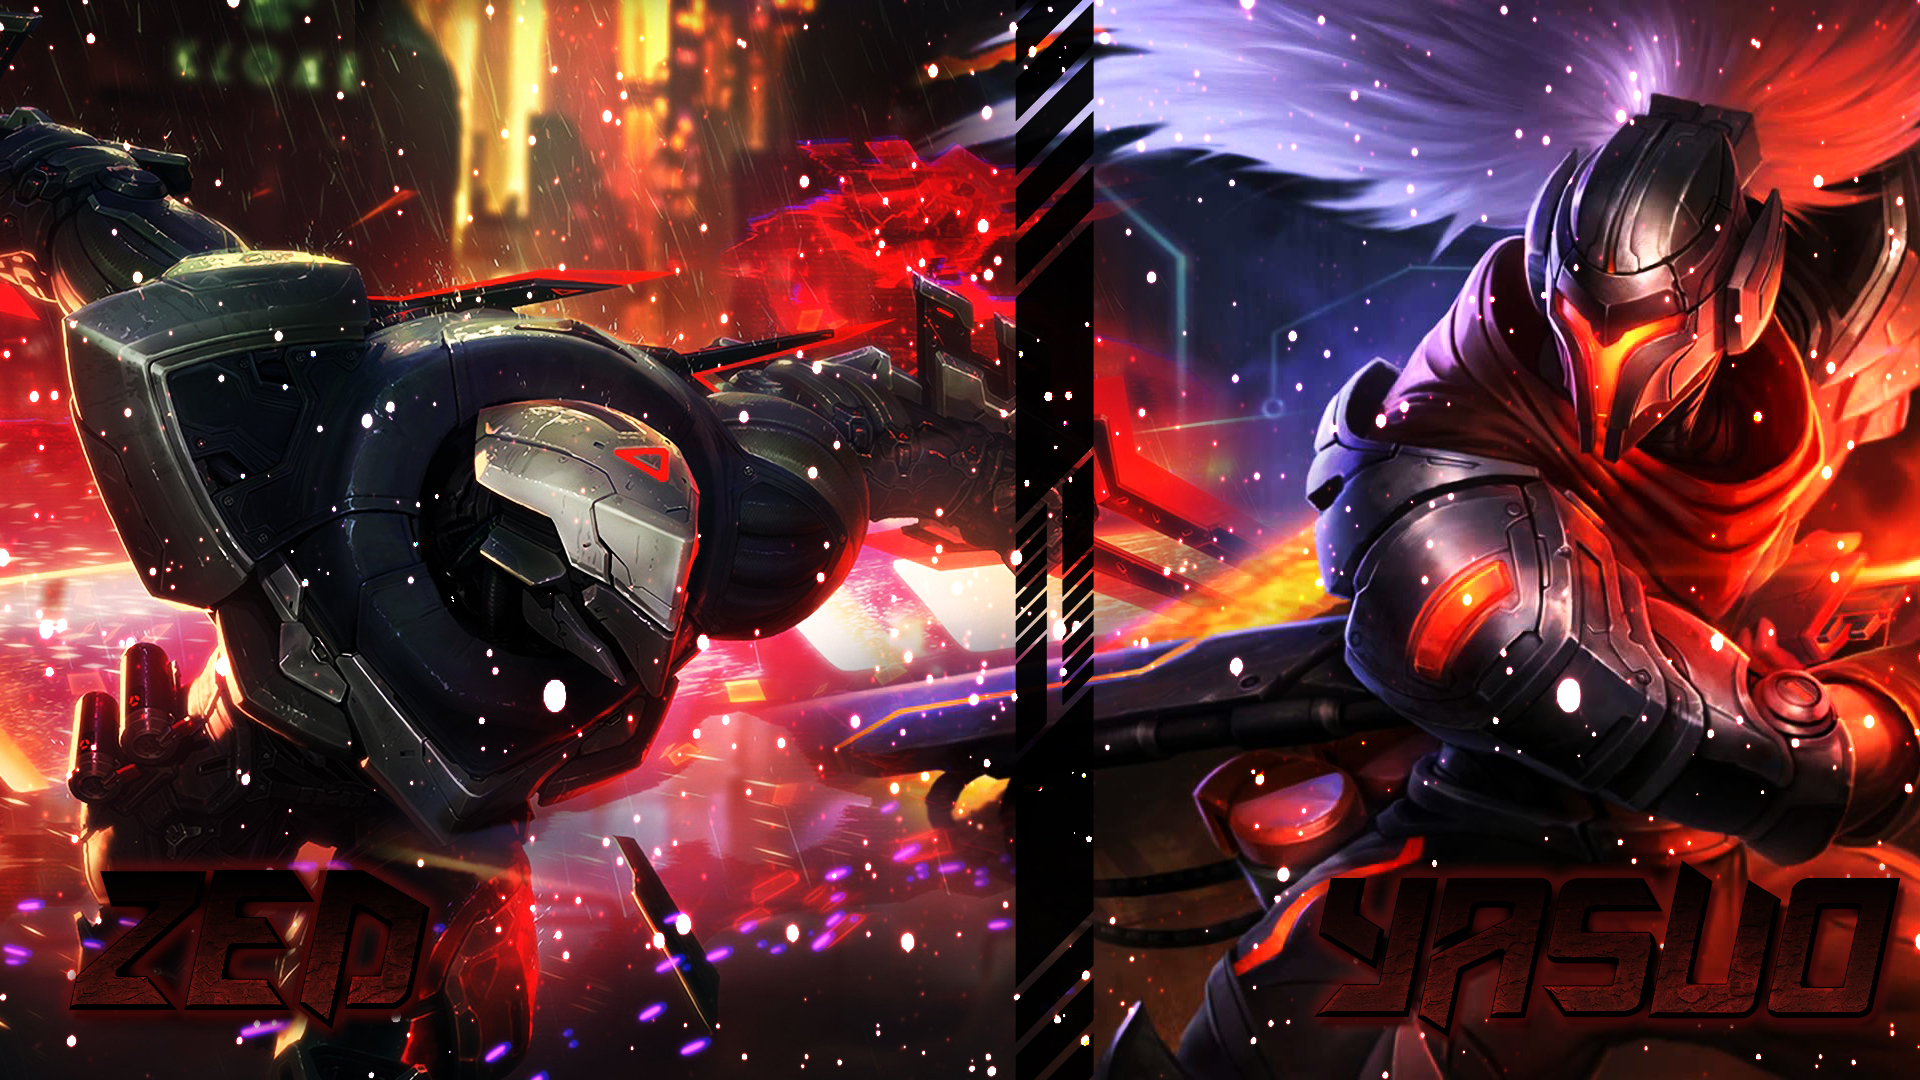 Zed and Yasuo Wallpaper by xsurfspyx on DeviantArt